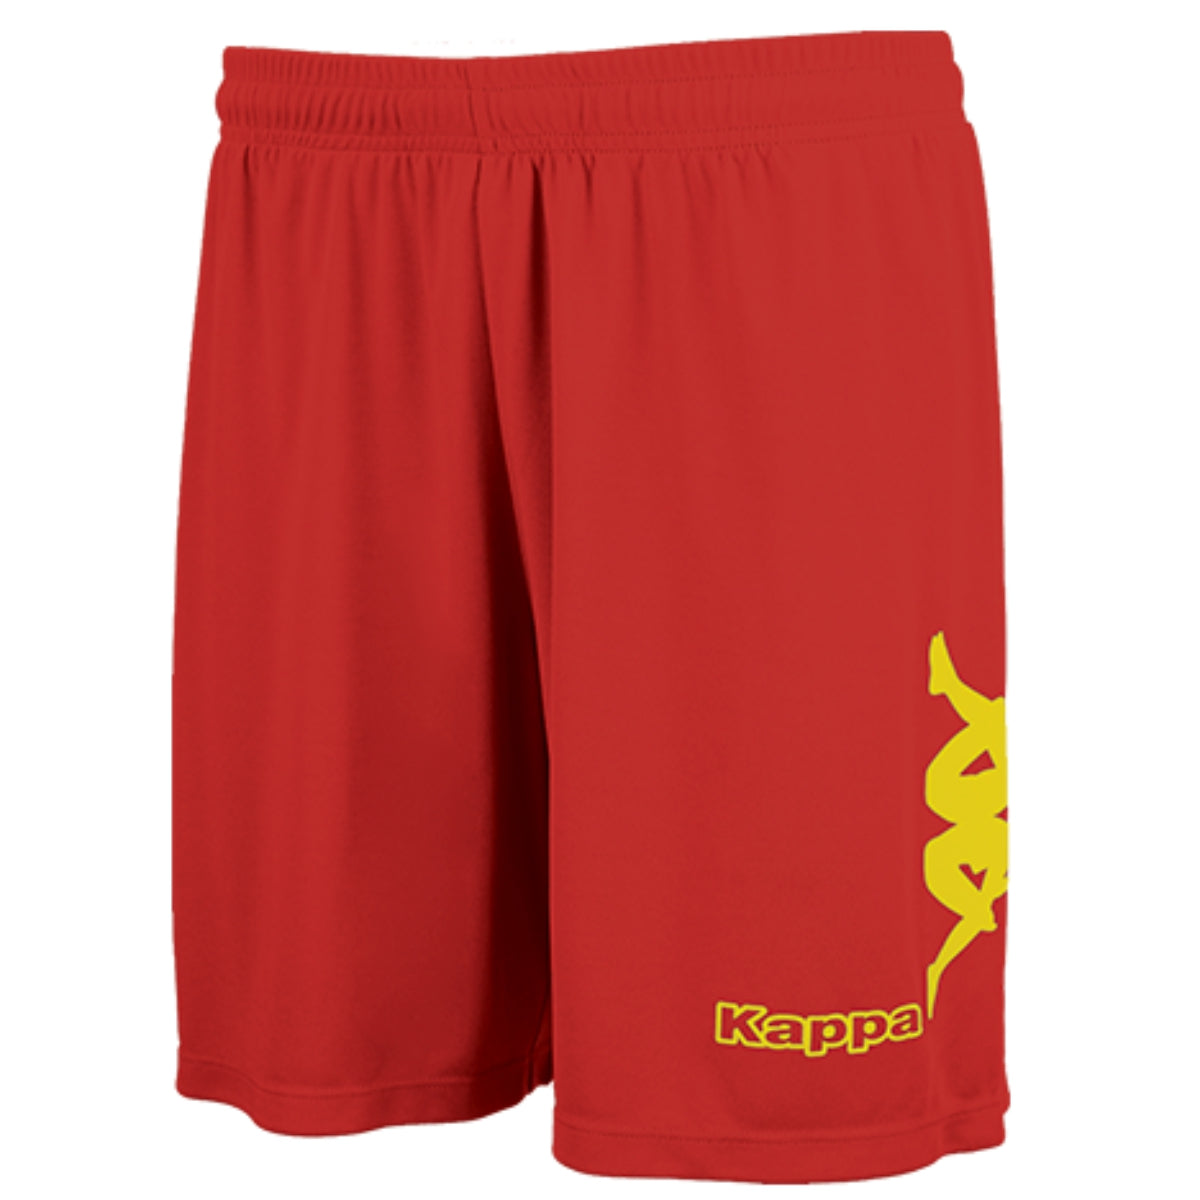 Kappa Talbino short in red with yellow Omini printed on the leg